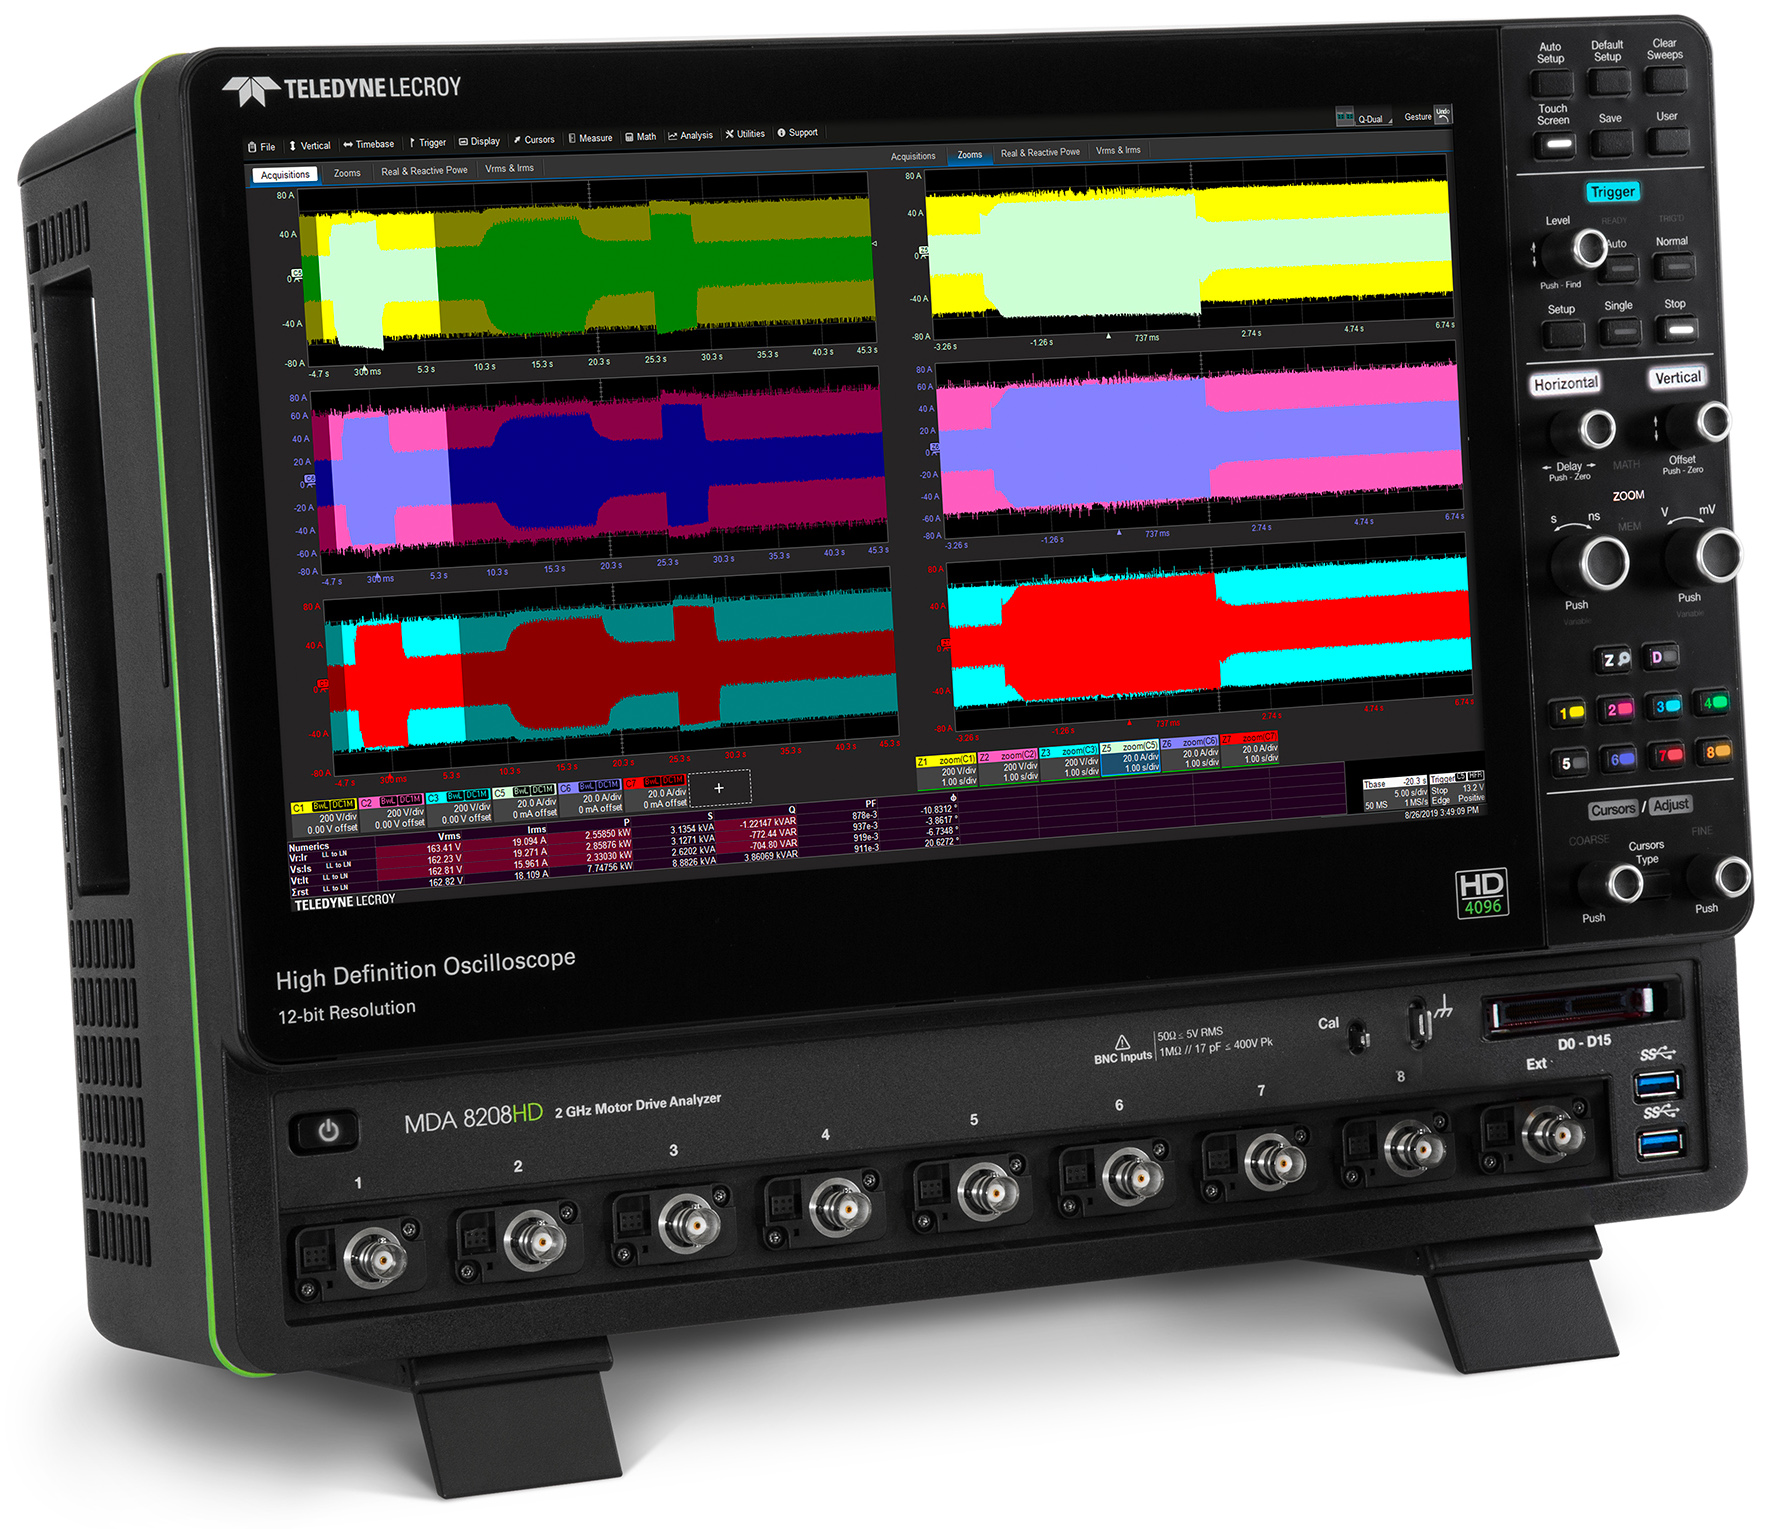 Motor Drive Analyzers Leverage New Platform and Software